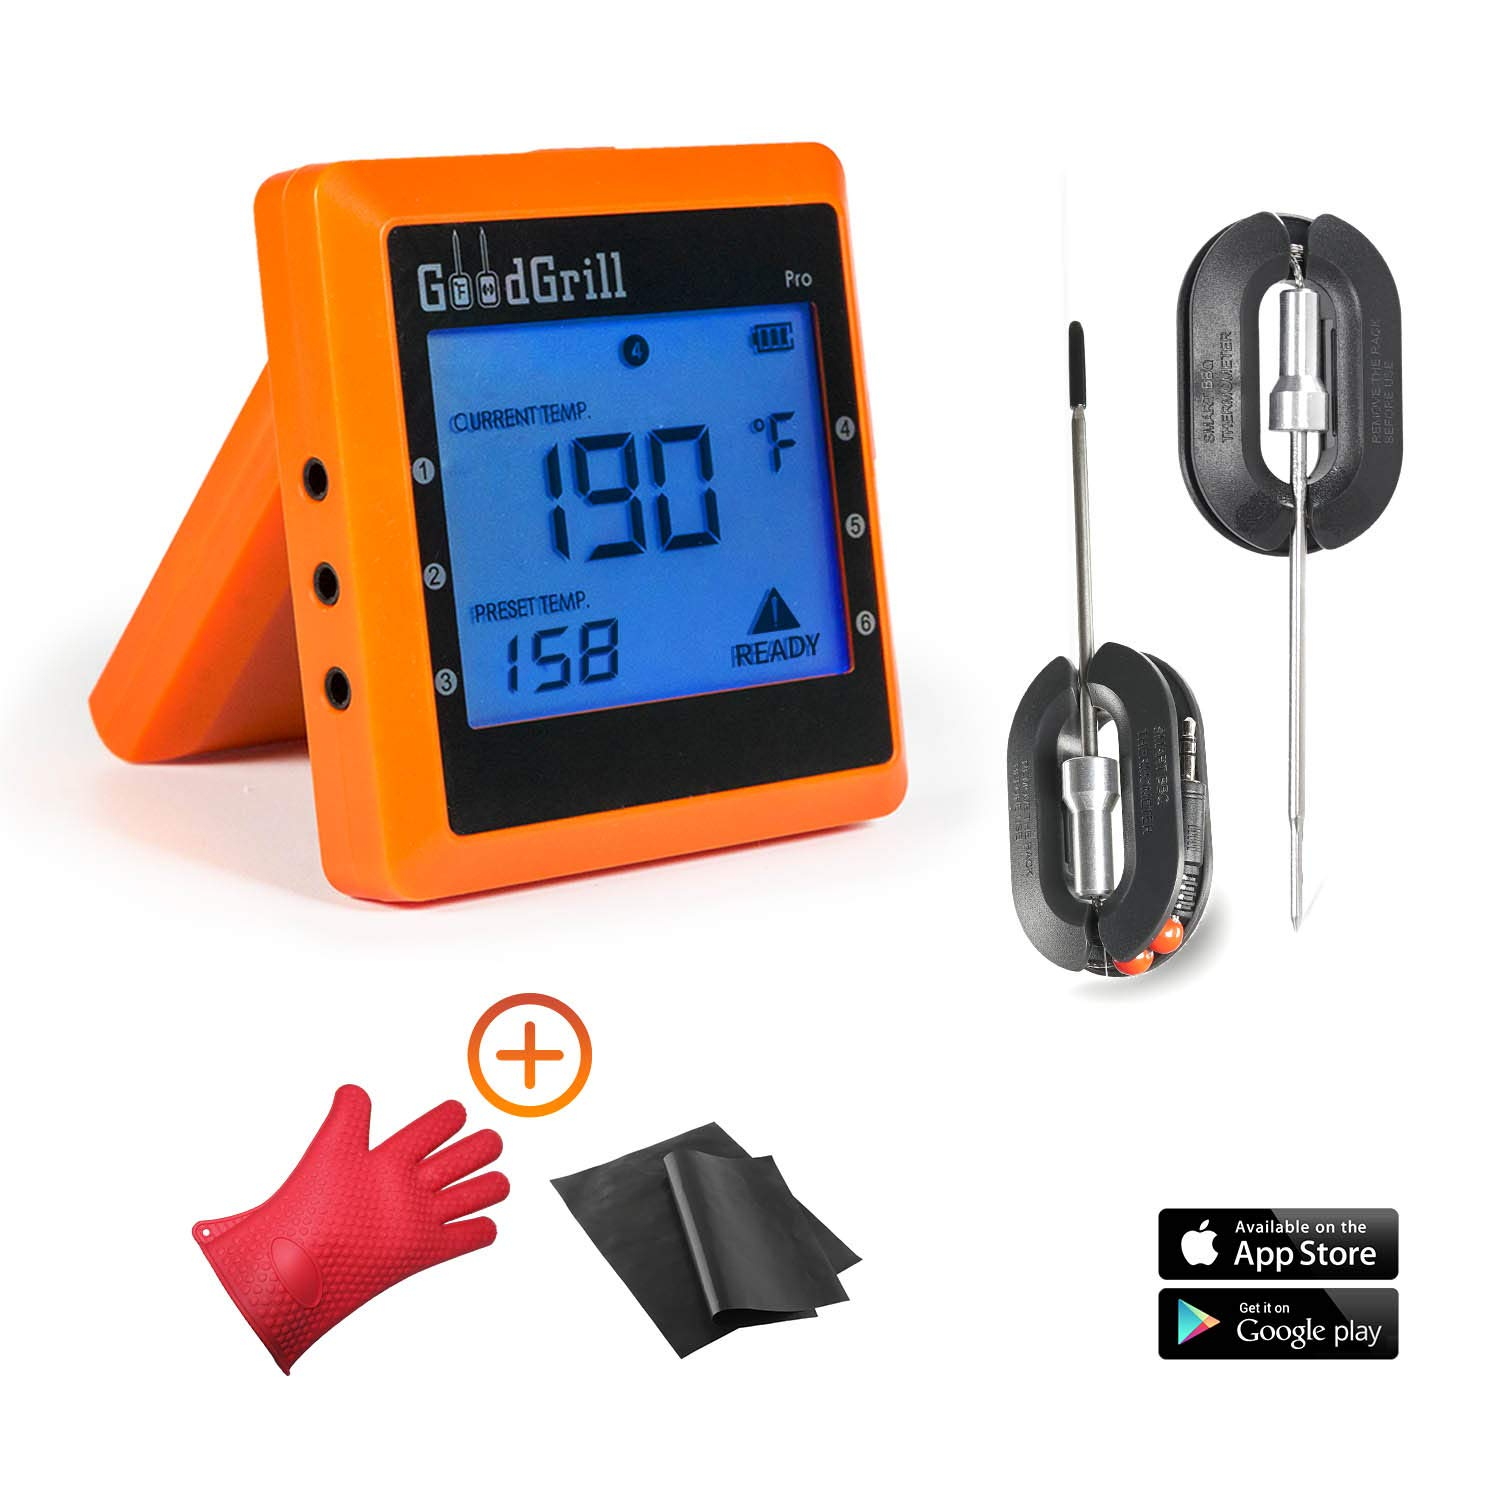 GoodGrill Wireless Meat Thermometer System - Bluetooth Meat Thermometers with 160' Range - Temp Monitoring Smartphone App, 2 Accurate Stainless Steel Probes for Grill & Smoker with 2 Special Bonuses